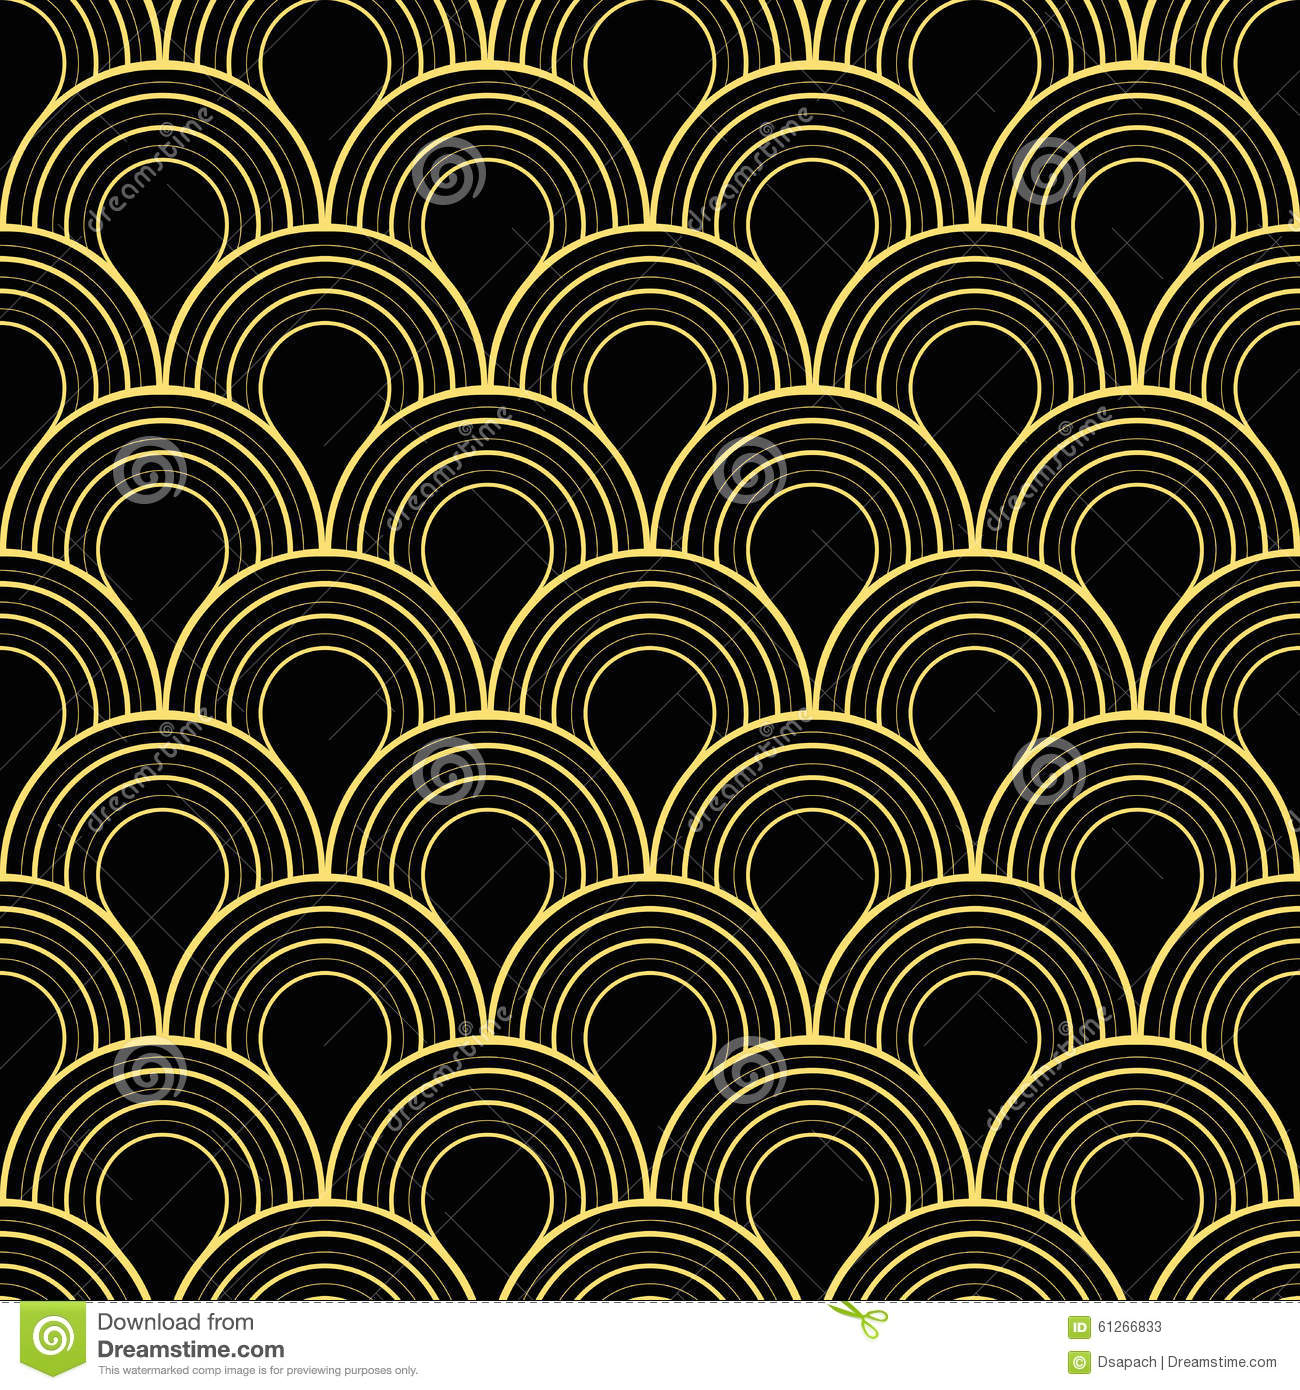 3d Geometric Wallpaper For Walls Seamless Black And Gold Art Deco Twenties Vintage Pattern